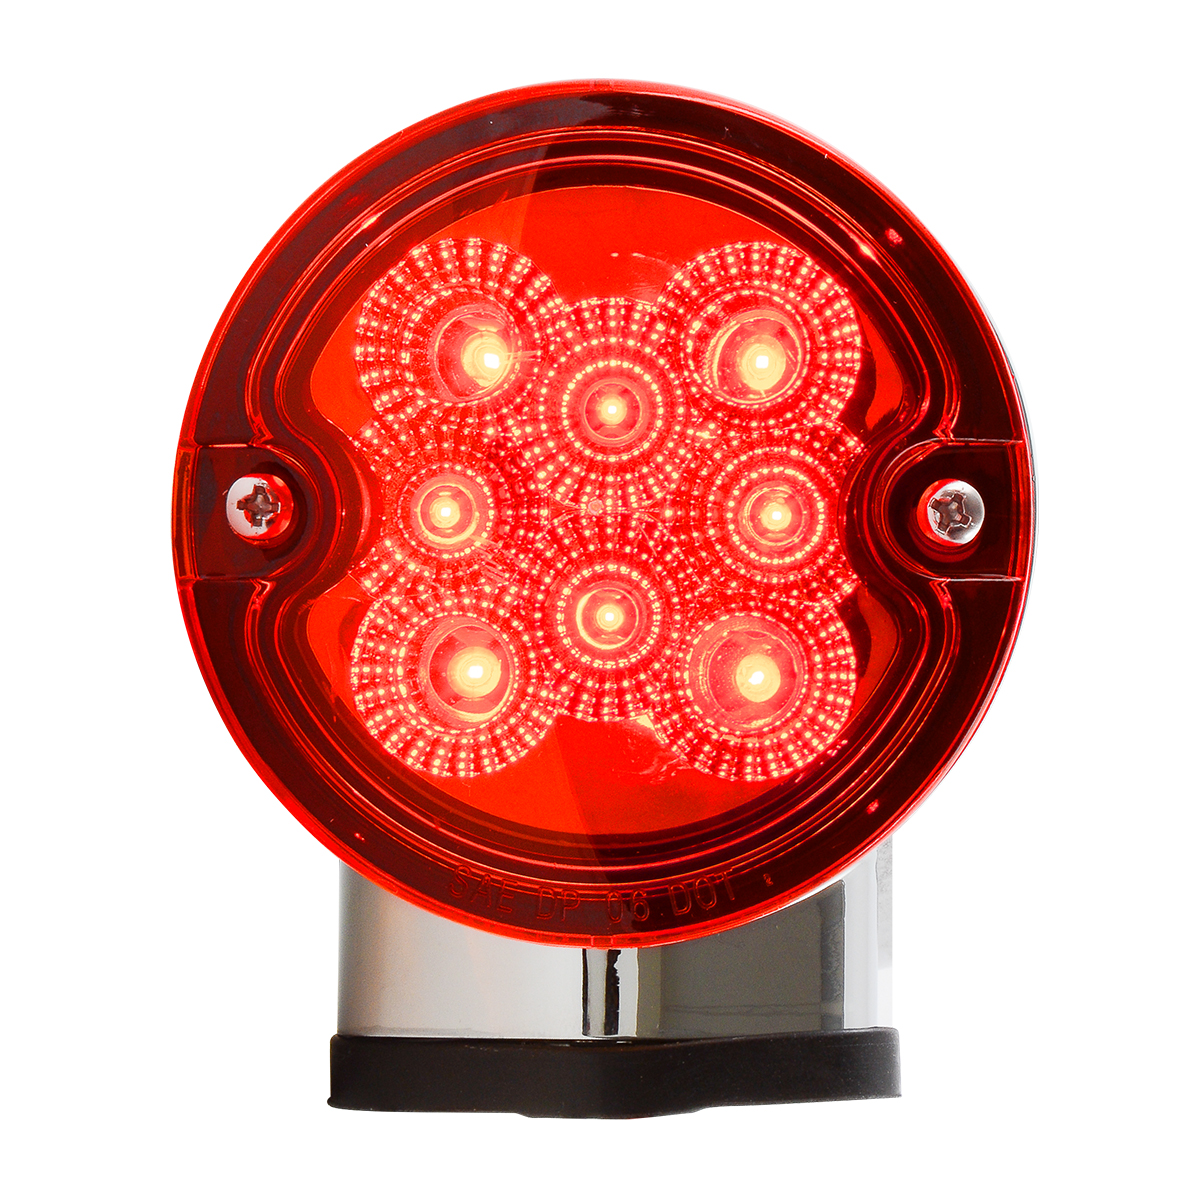 77252 Single Face Projected Spyder LED Pedestal Light